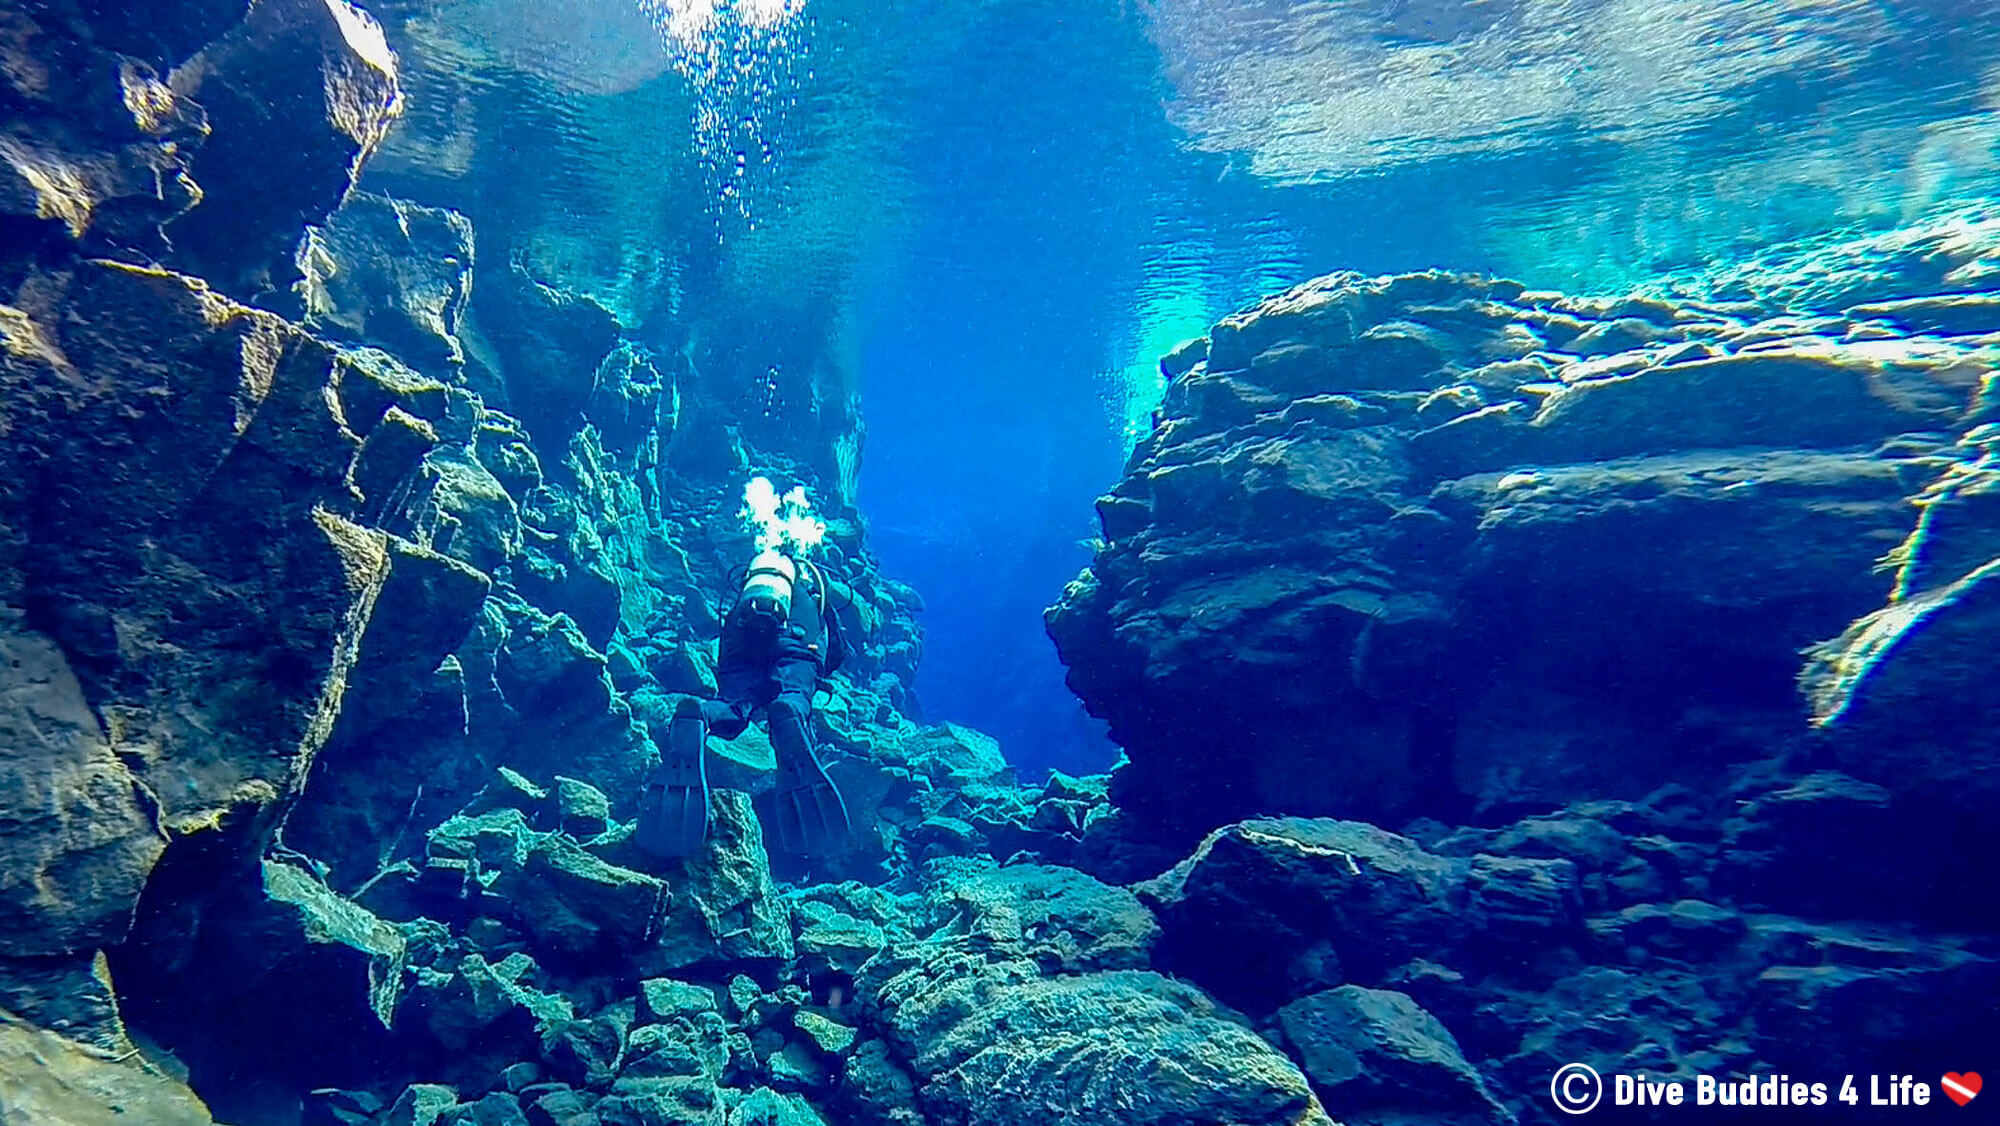 Scuba Diving In The Lava Rock Formations Of The Silfra Crack